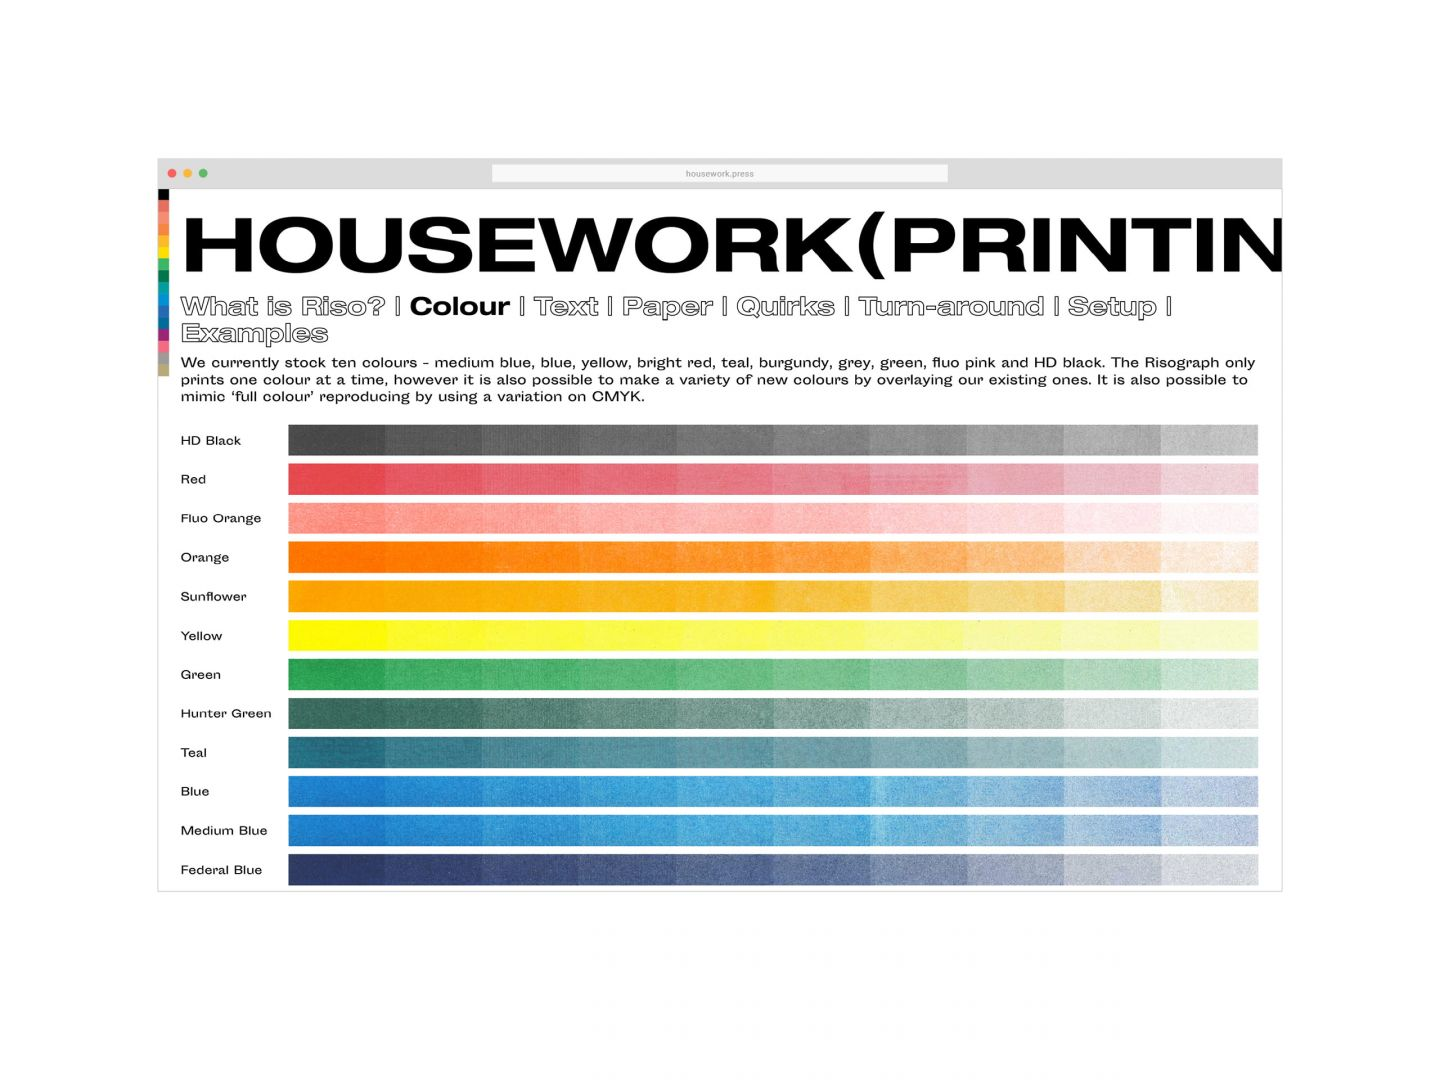 Zyxt_HouseworkPress_Identity-Design_6